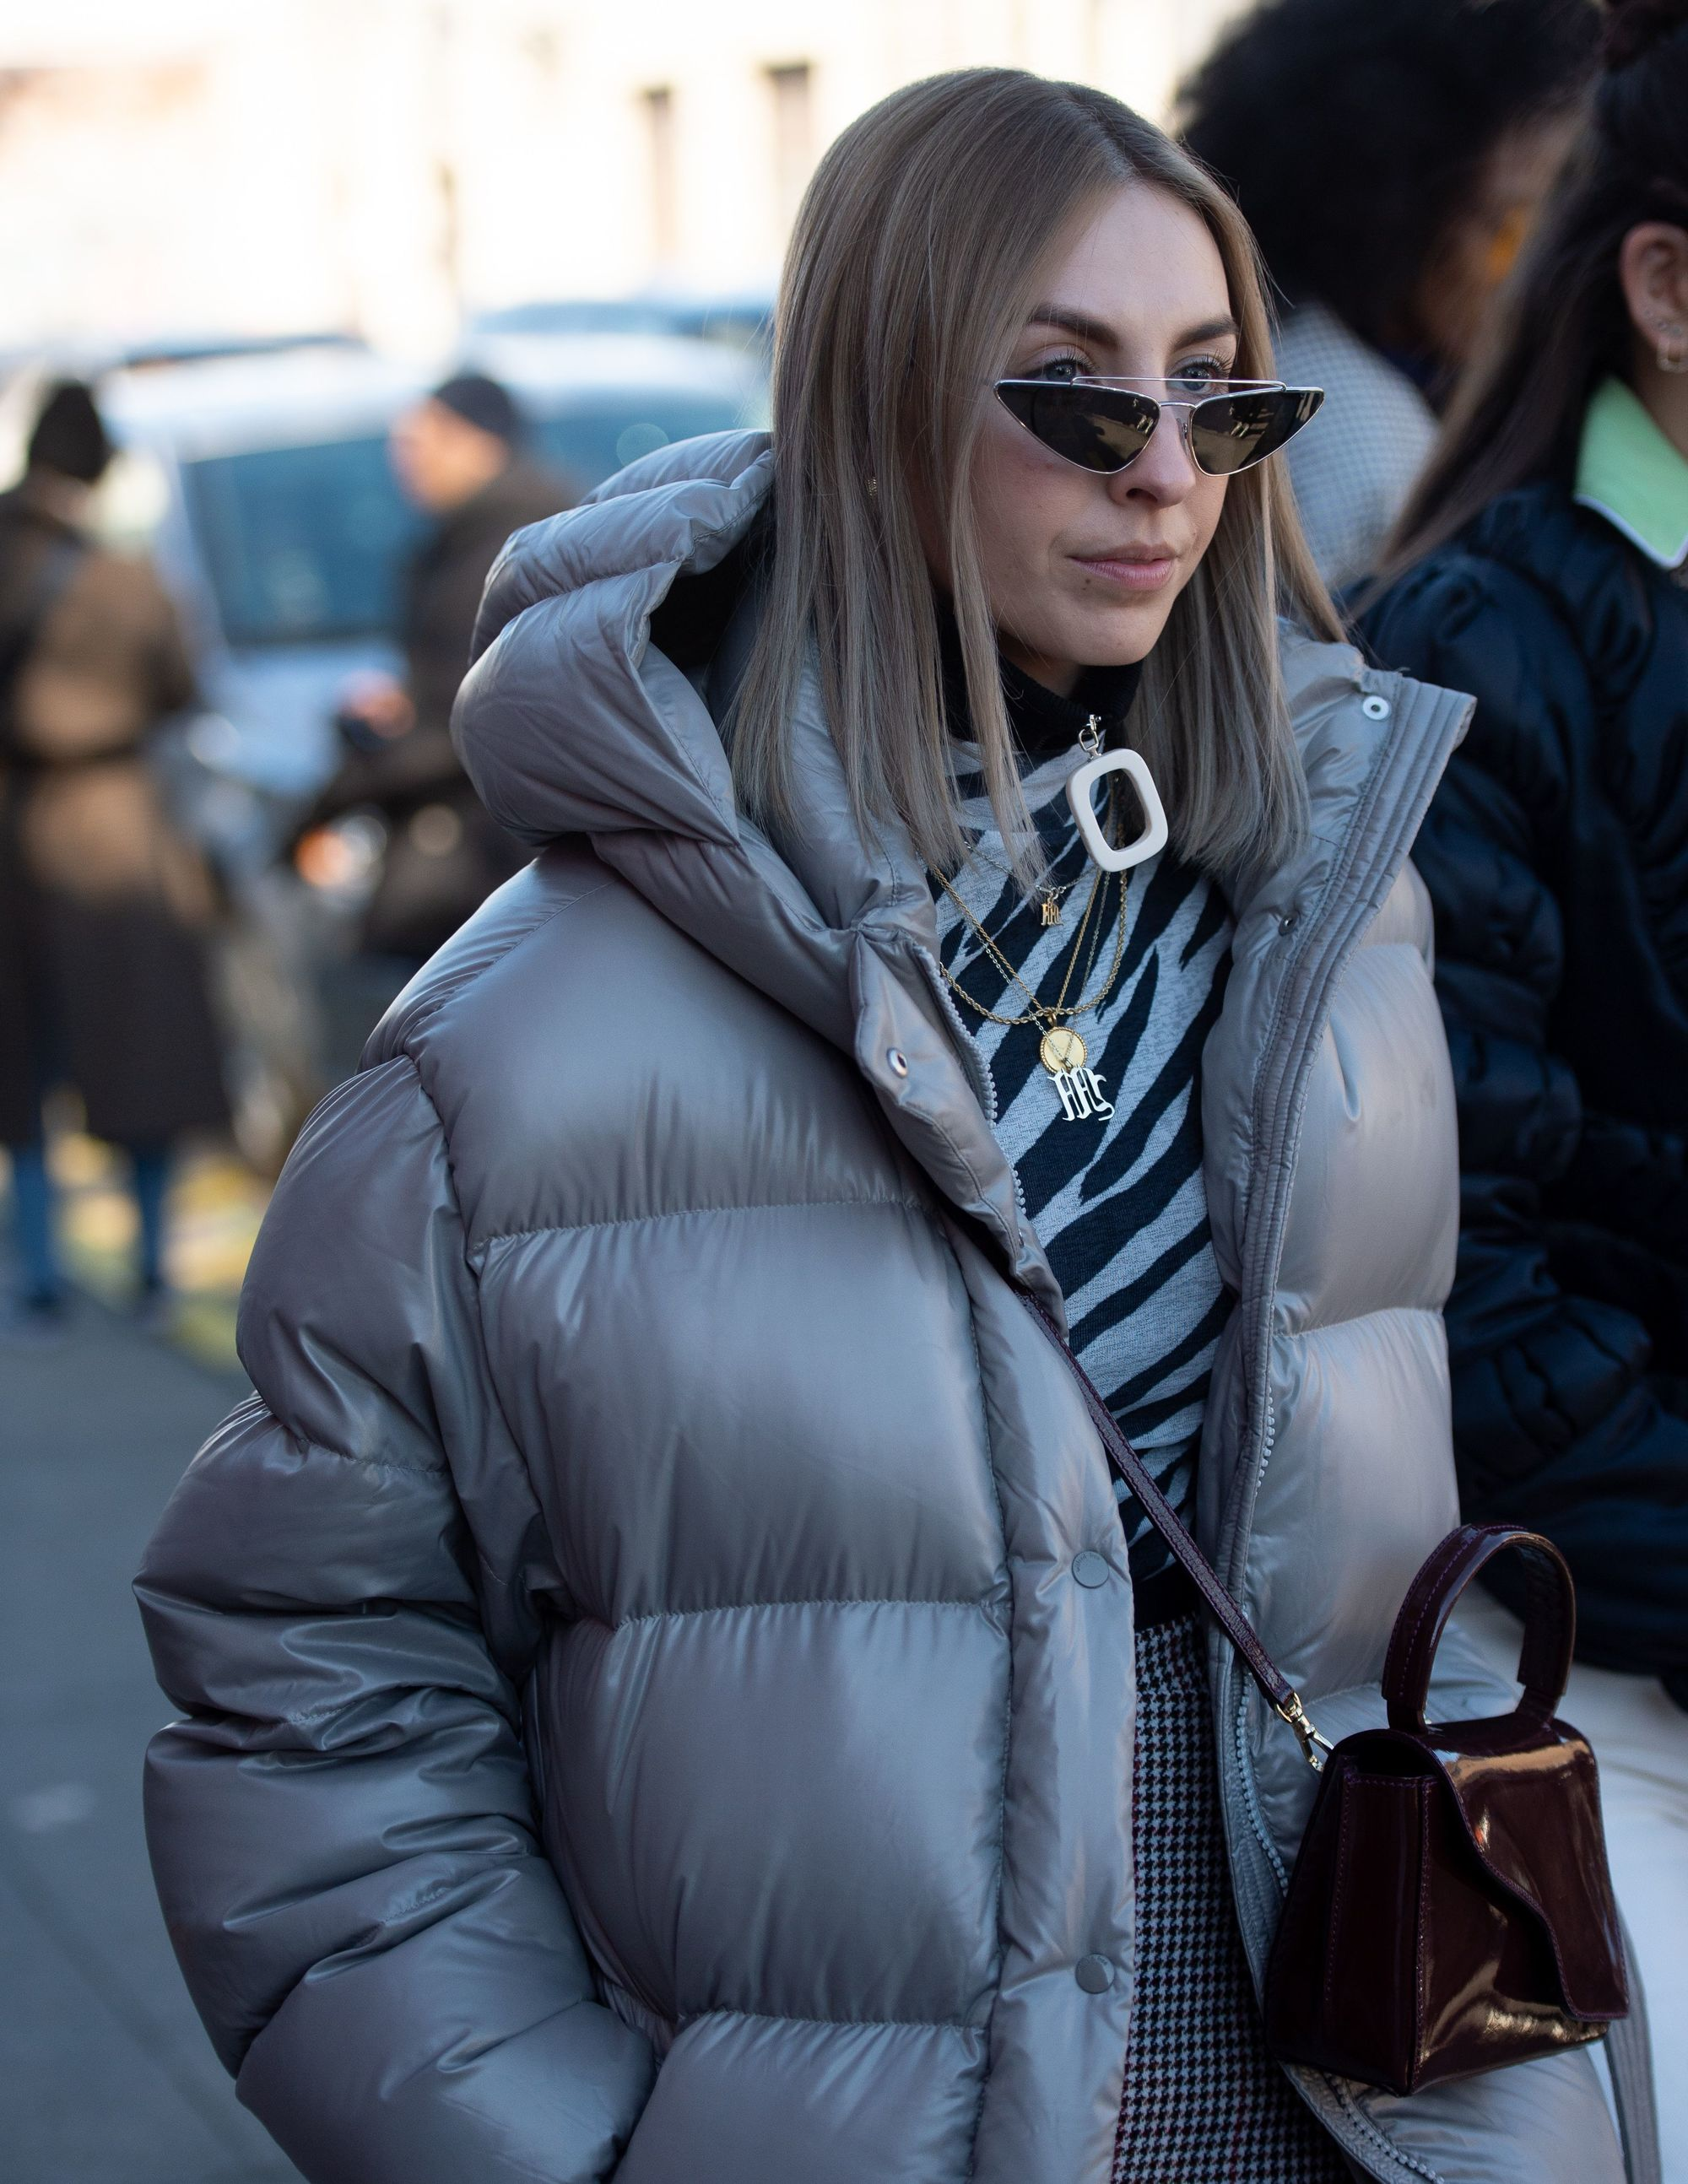 2019 hair colour trends: Street style shot of a woman with straight mushroom brown lob hair, wearing a grey puffa jacket